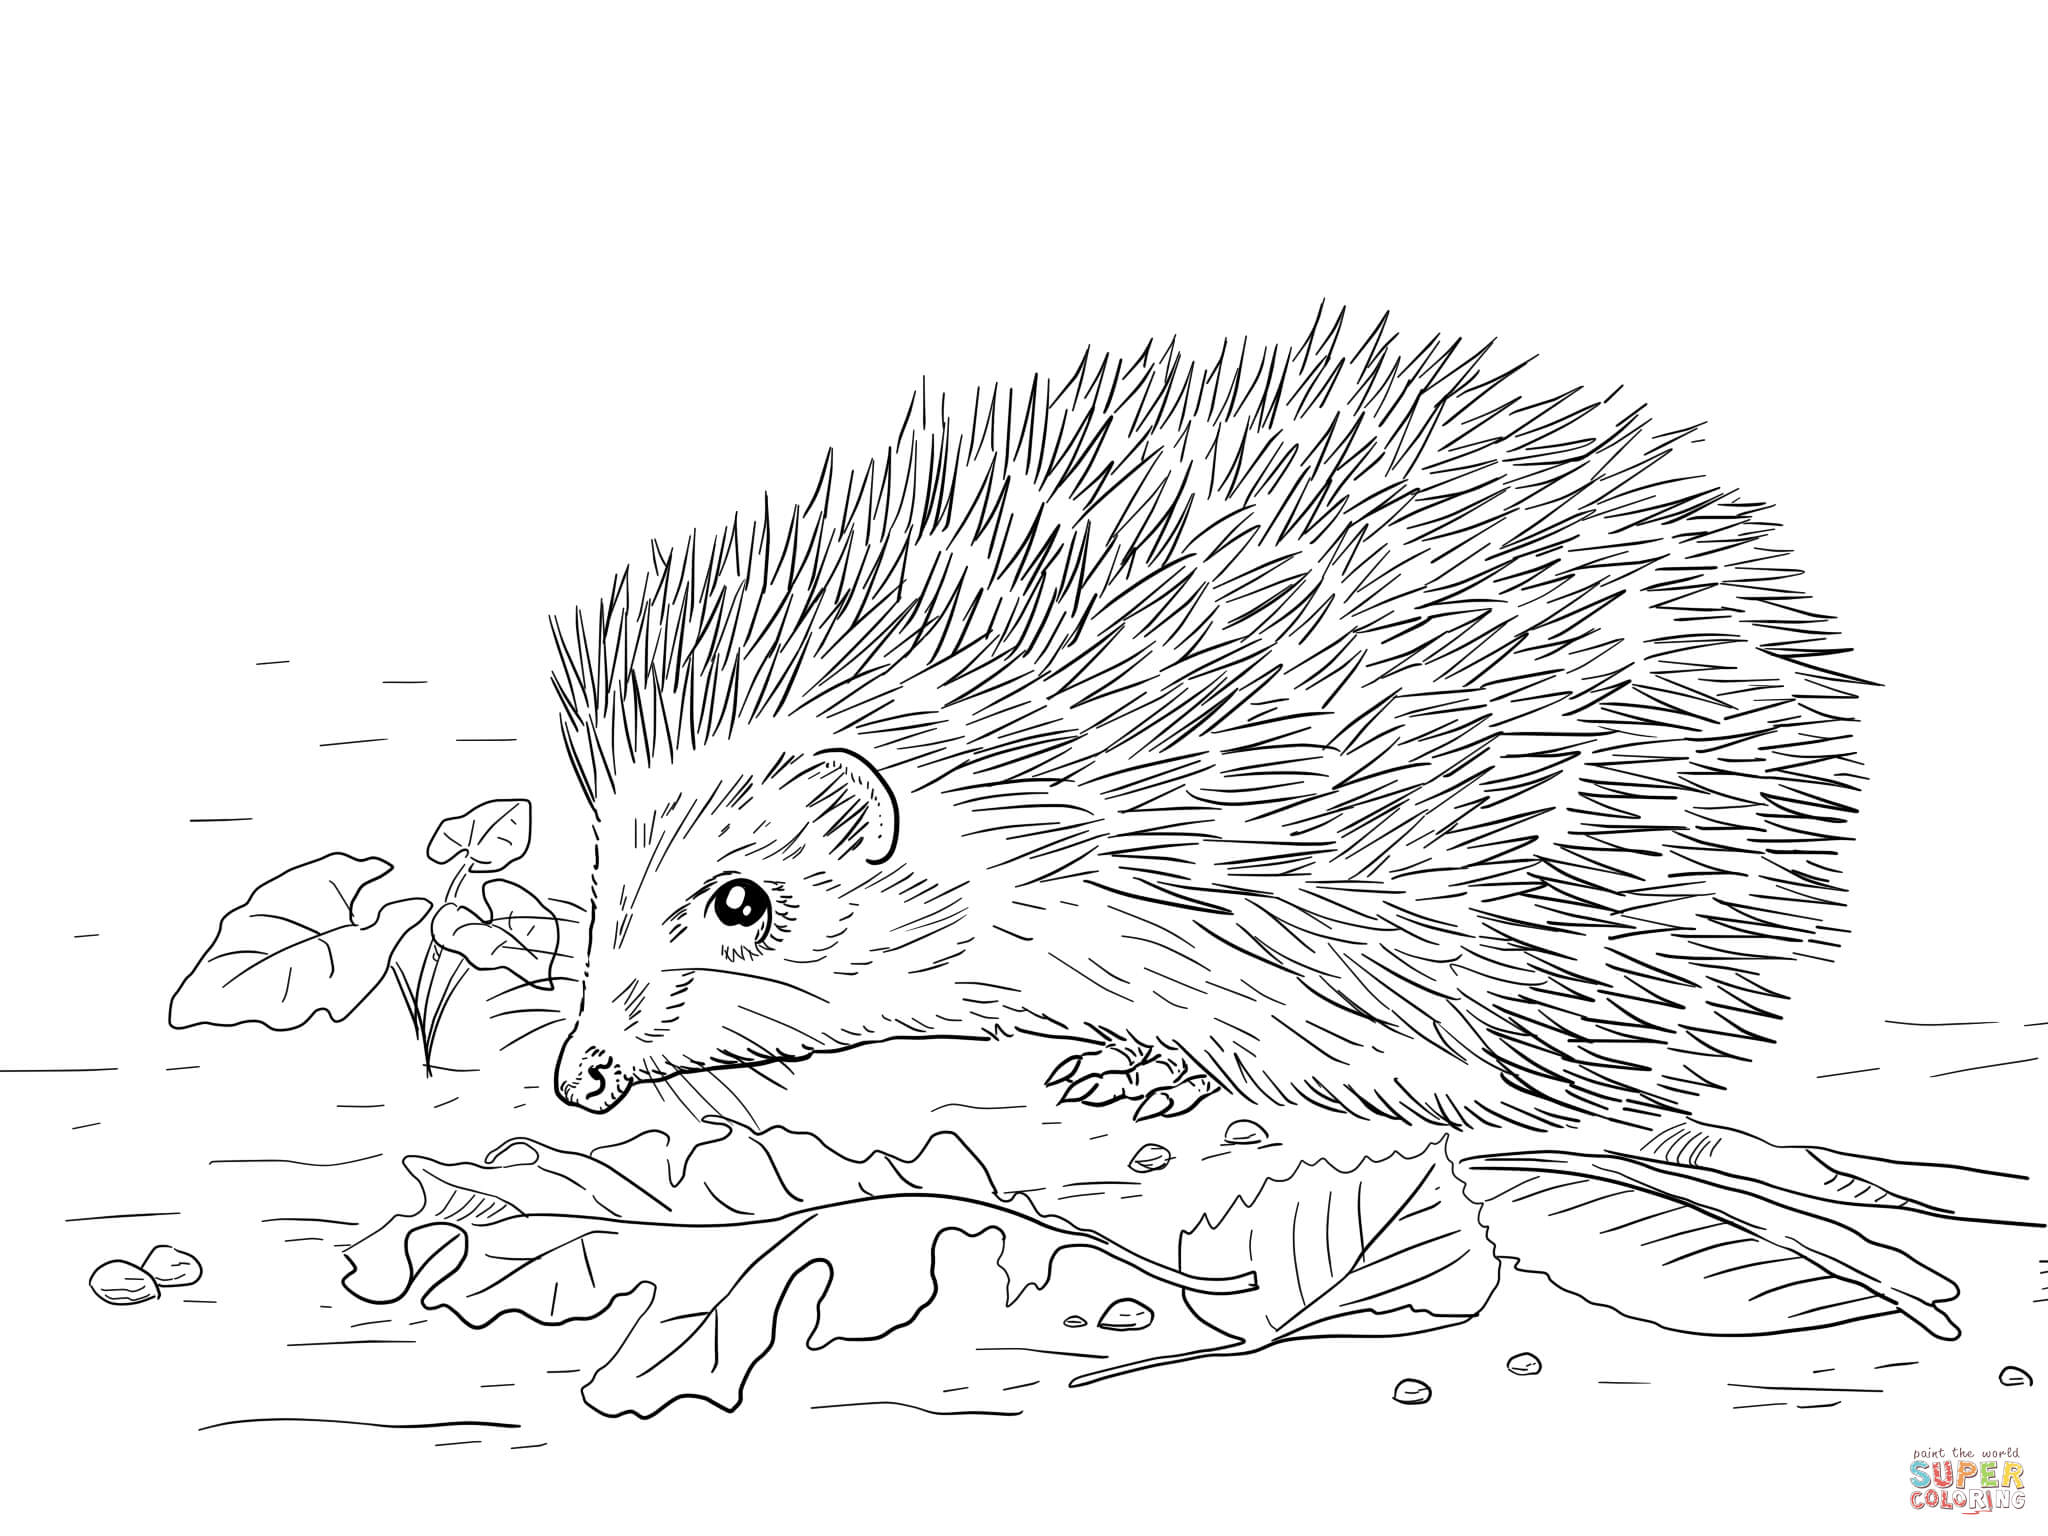 hedgehog colouring sheet animals page 2 literally homeschool colouring sheet hedgehog